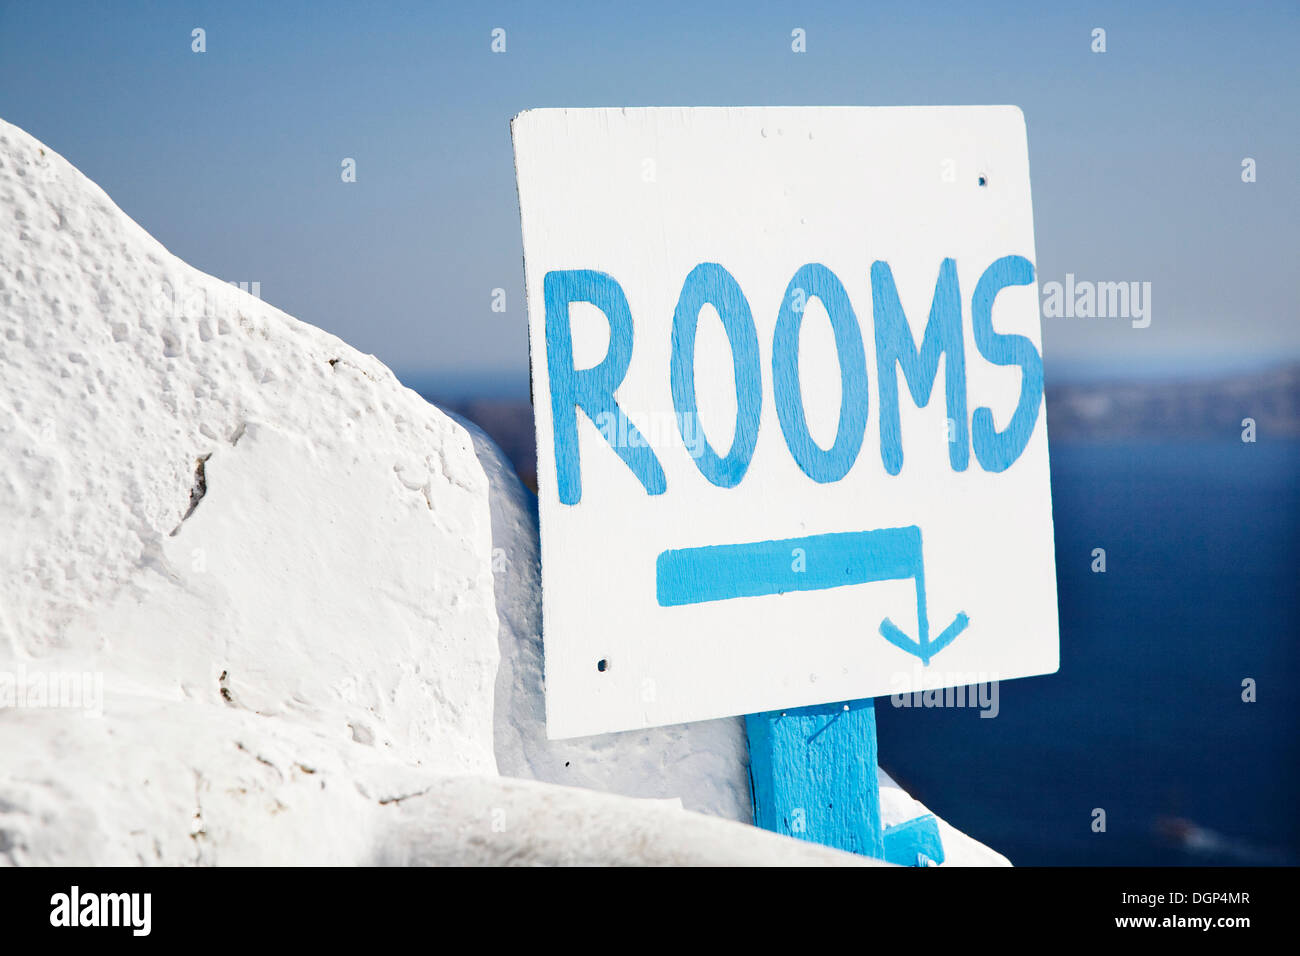 Sign, Rooms, Fira, Santorini, Cyclades, Greece, Europe - Stock Image